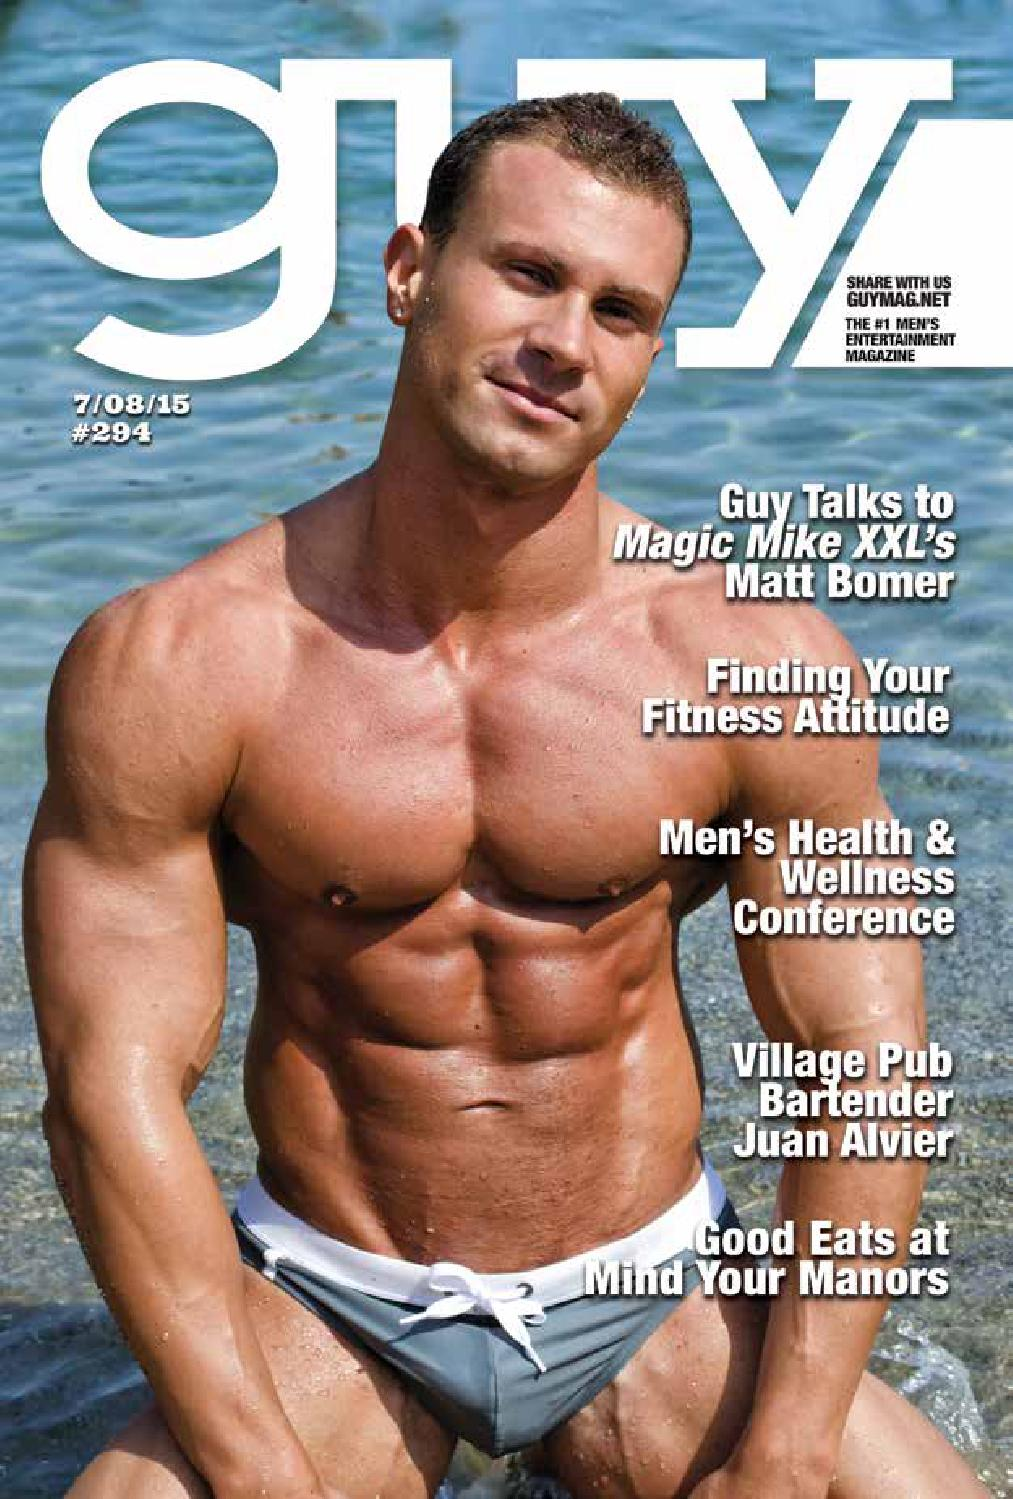 Attitude Magazine Thailand In Chiang Mai Gay News And Events